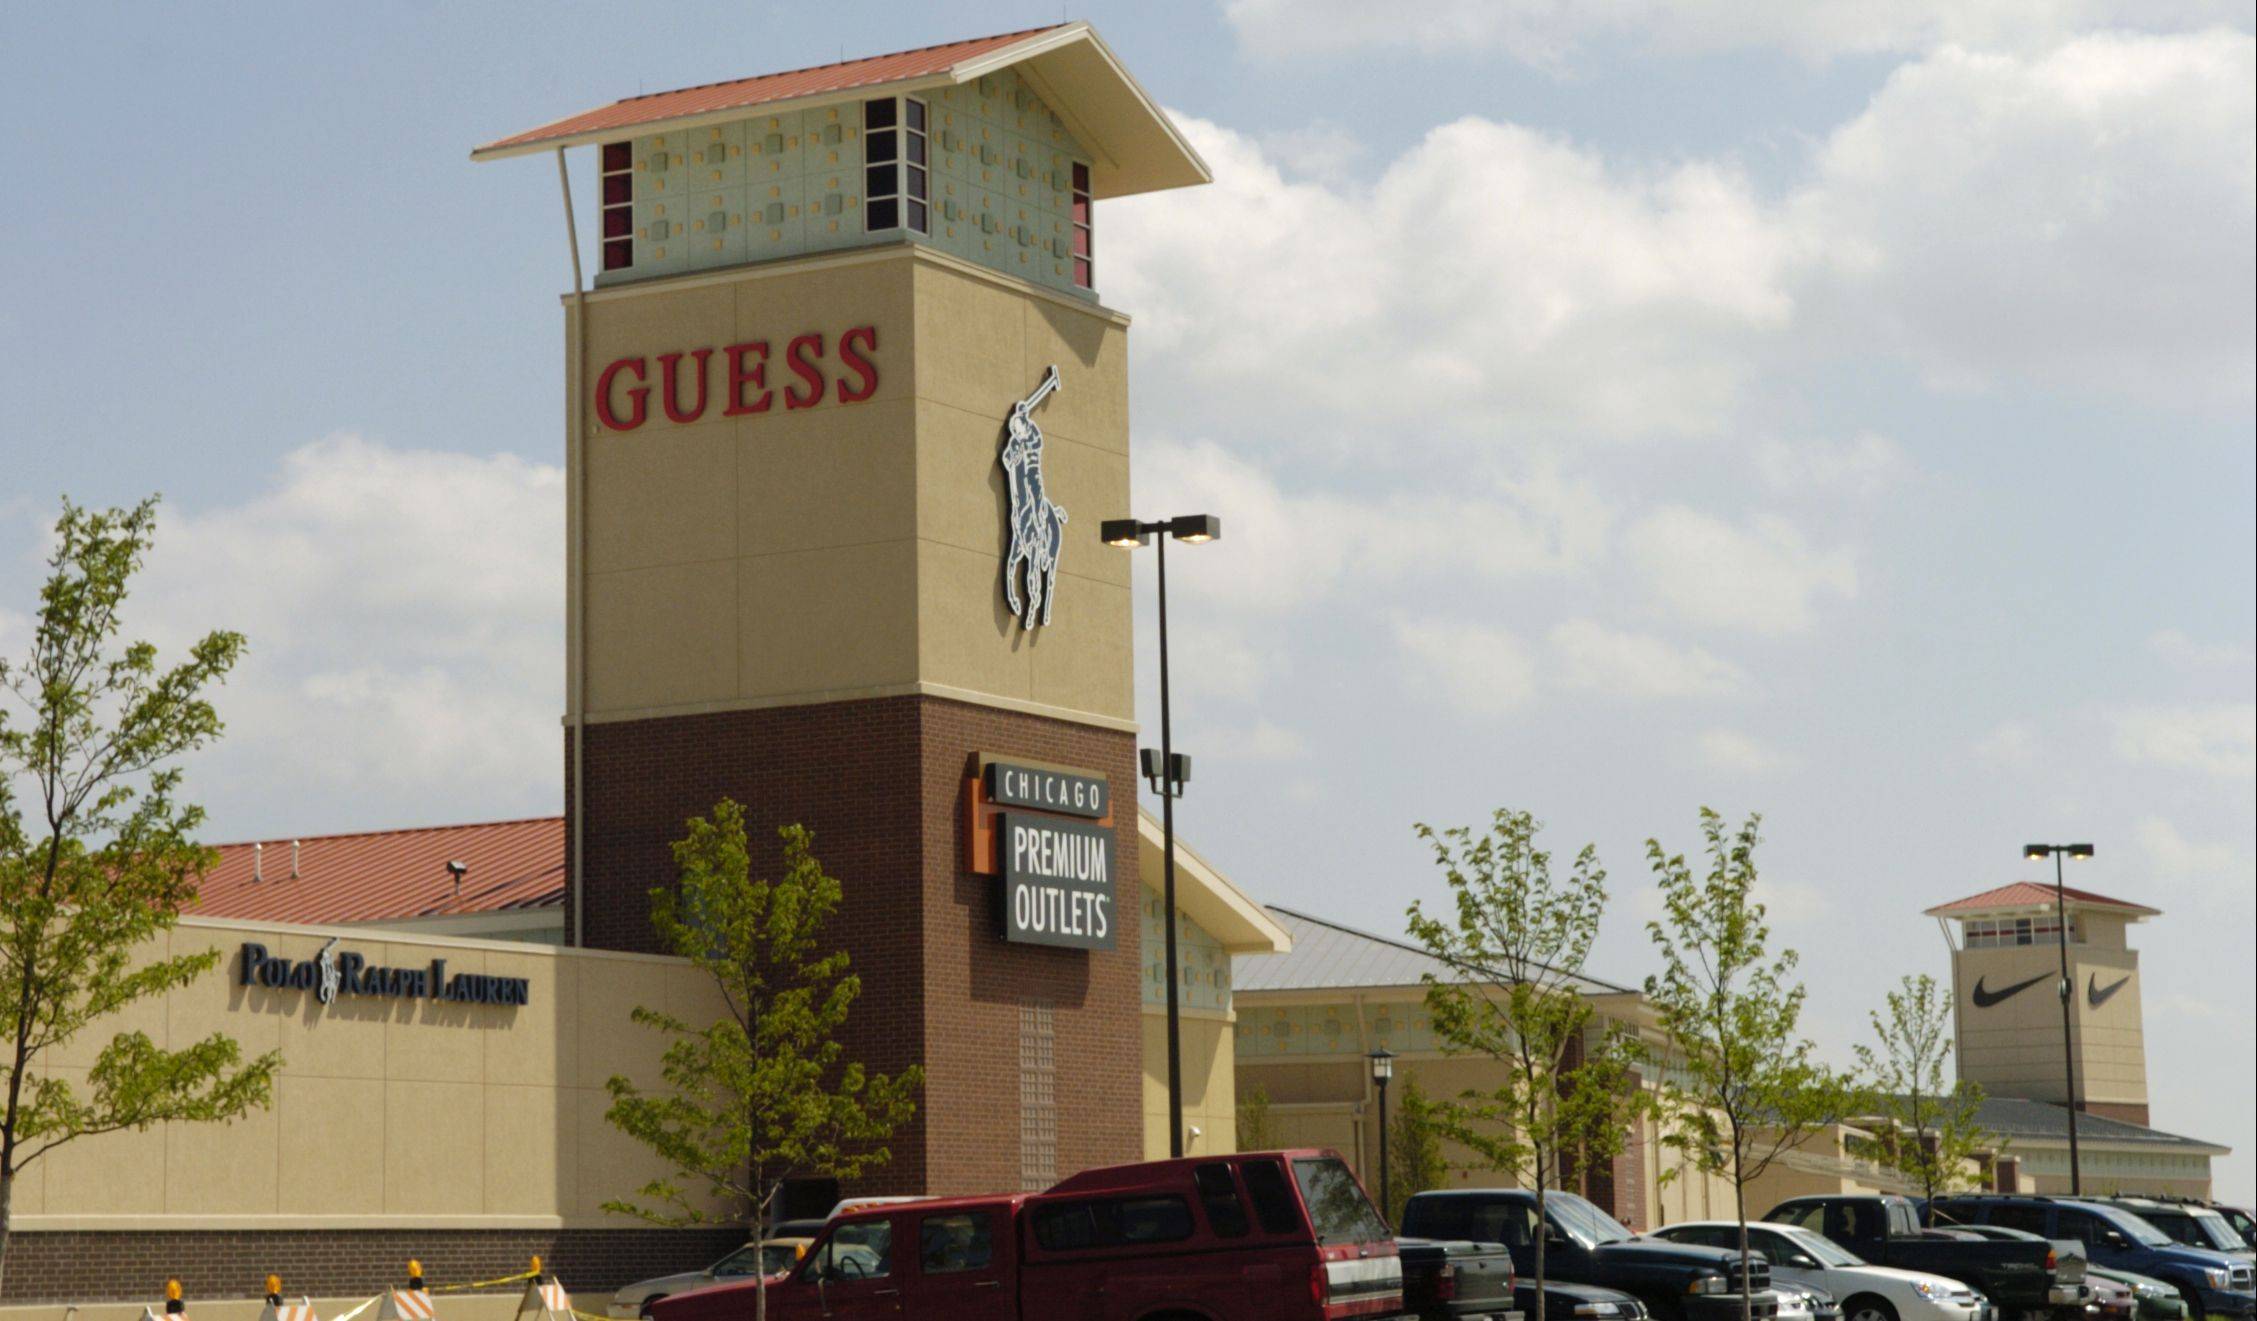 Aurora will continue to invest in the area around Chicago Premium Outlets by transferring funds from an expiring tax increment financing district into two new TIFs on either side of the outlet mall.